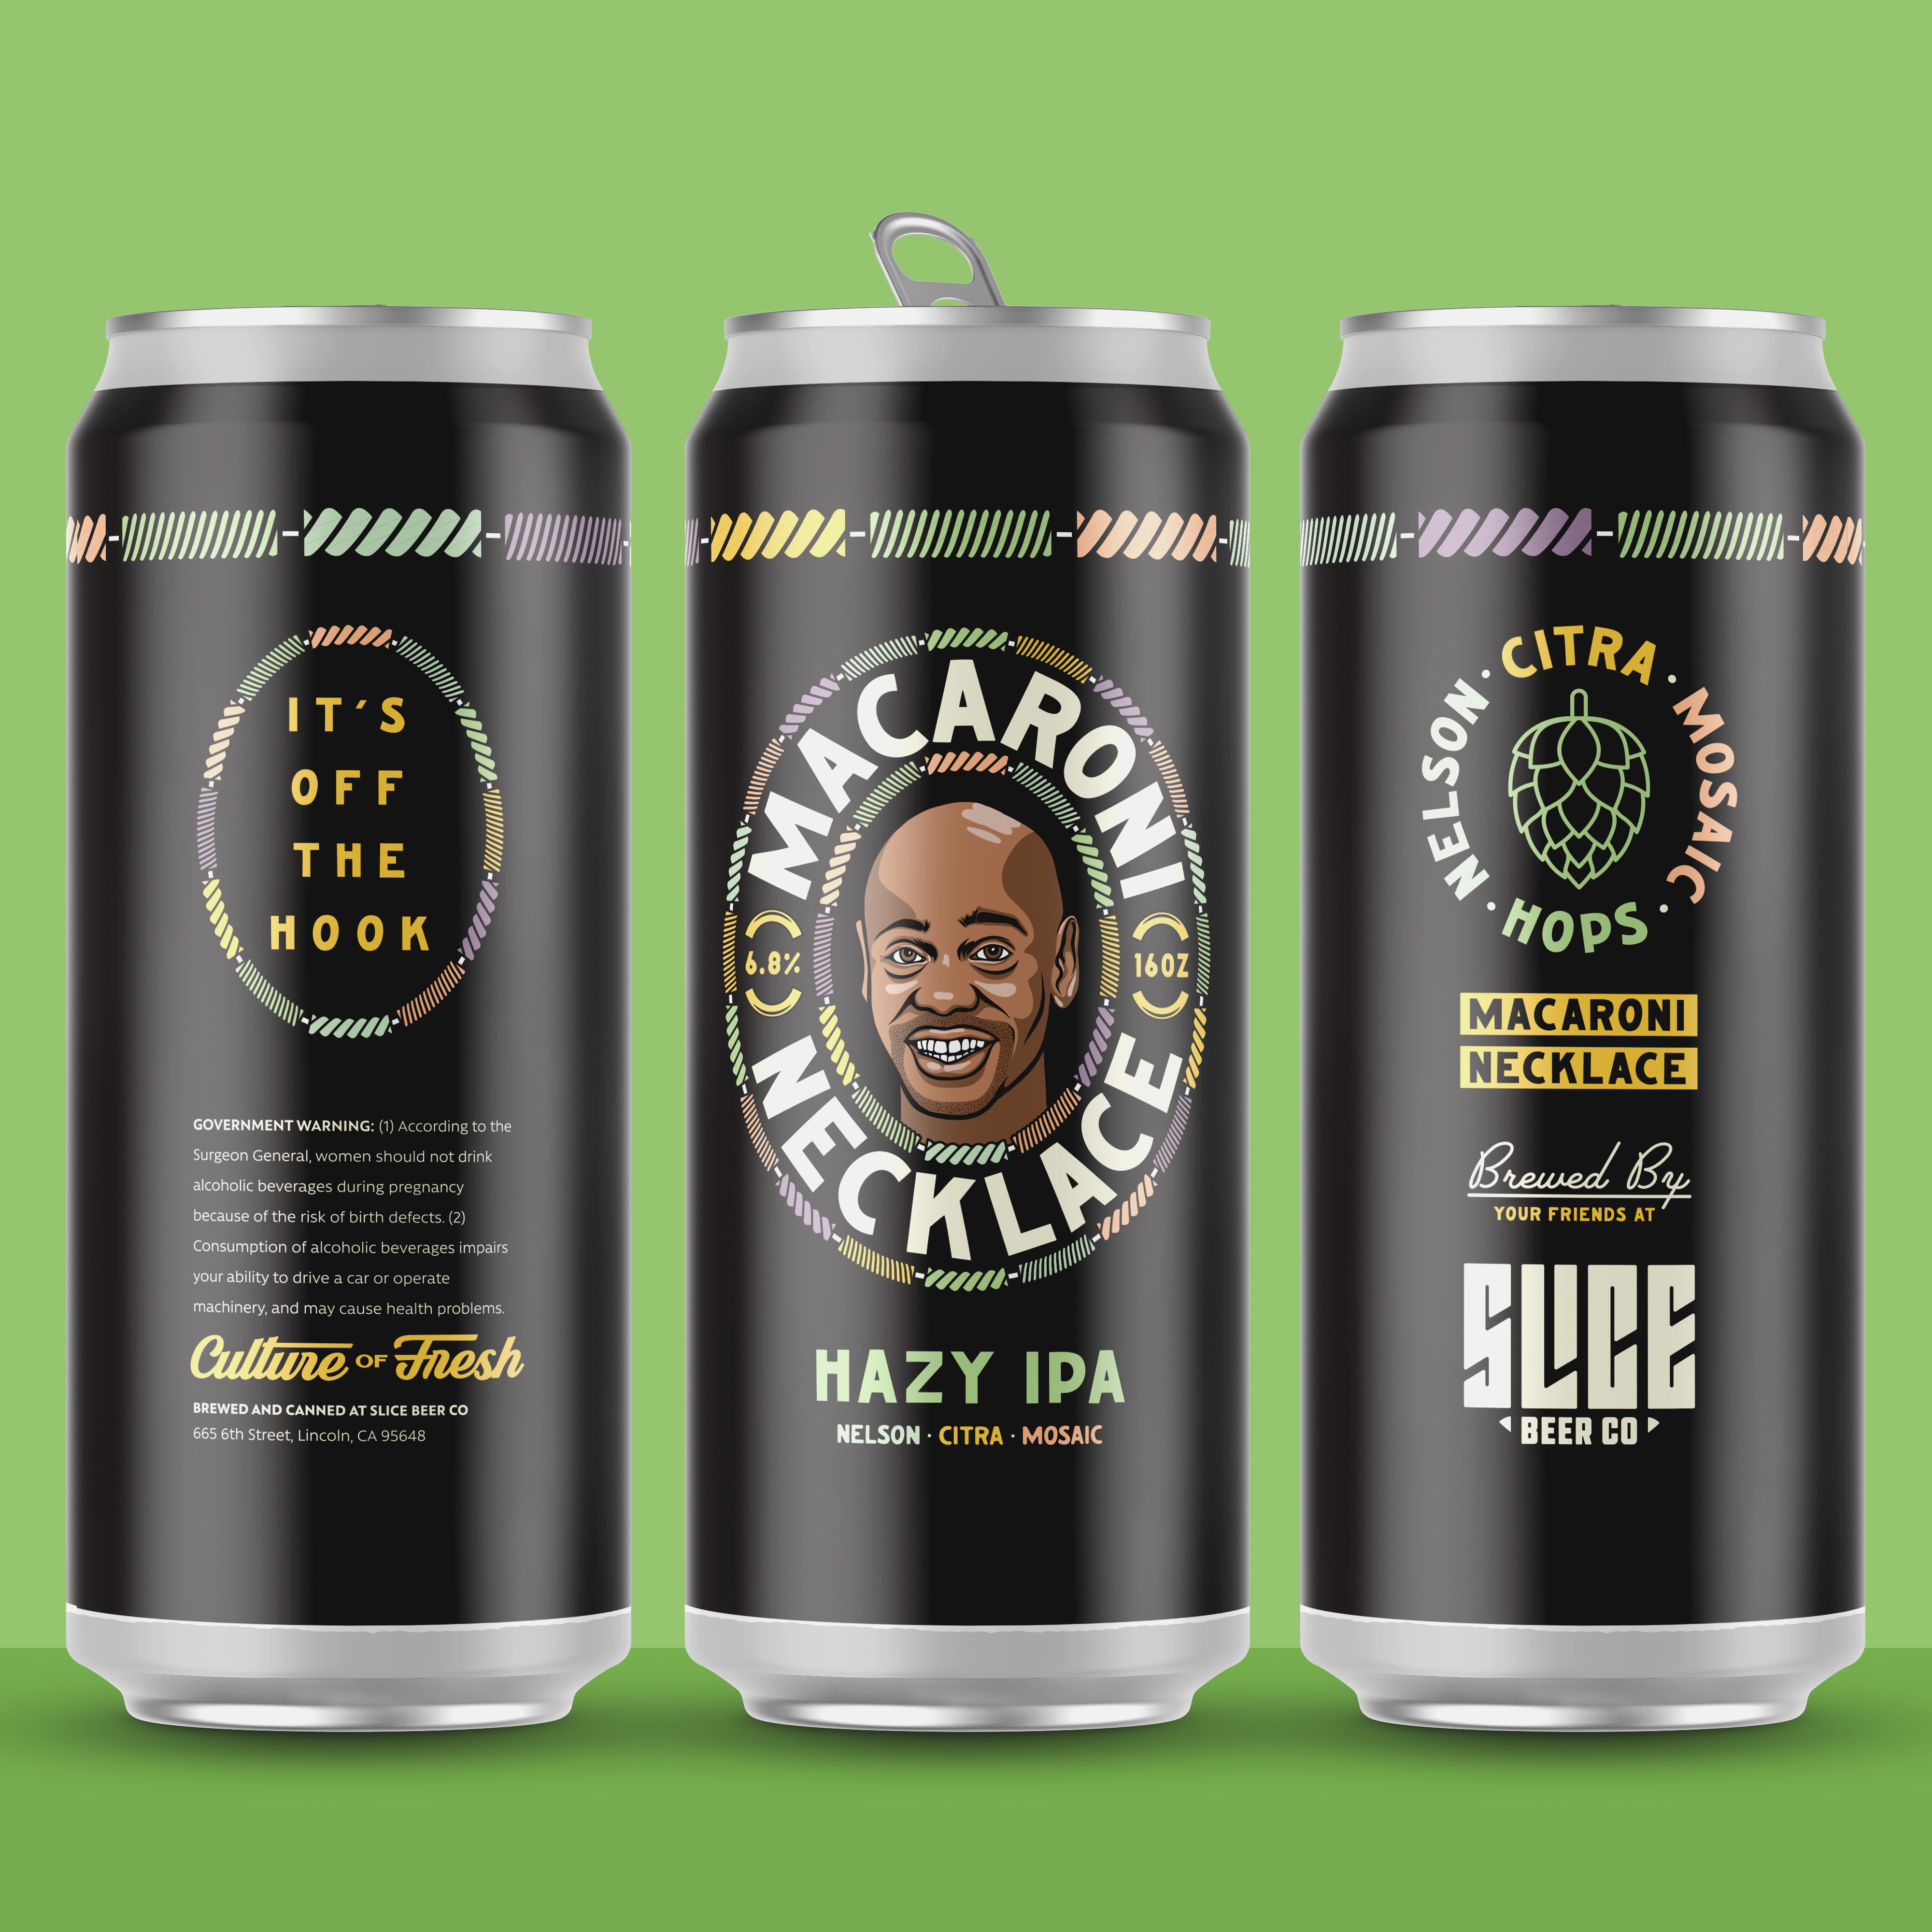 Holy Macaroni hops hazy ipa necklace chappelle dave typography badge illustration packaging branding comedy macaroni beer